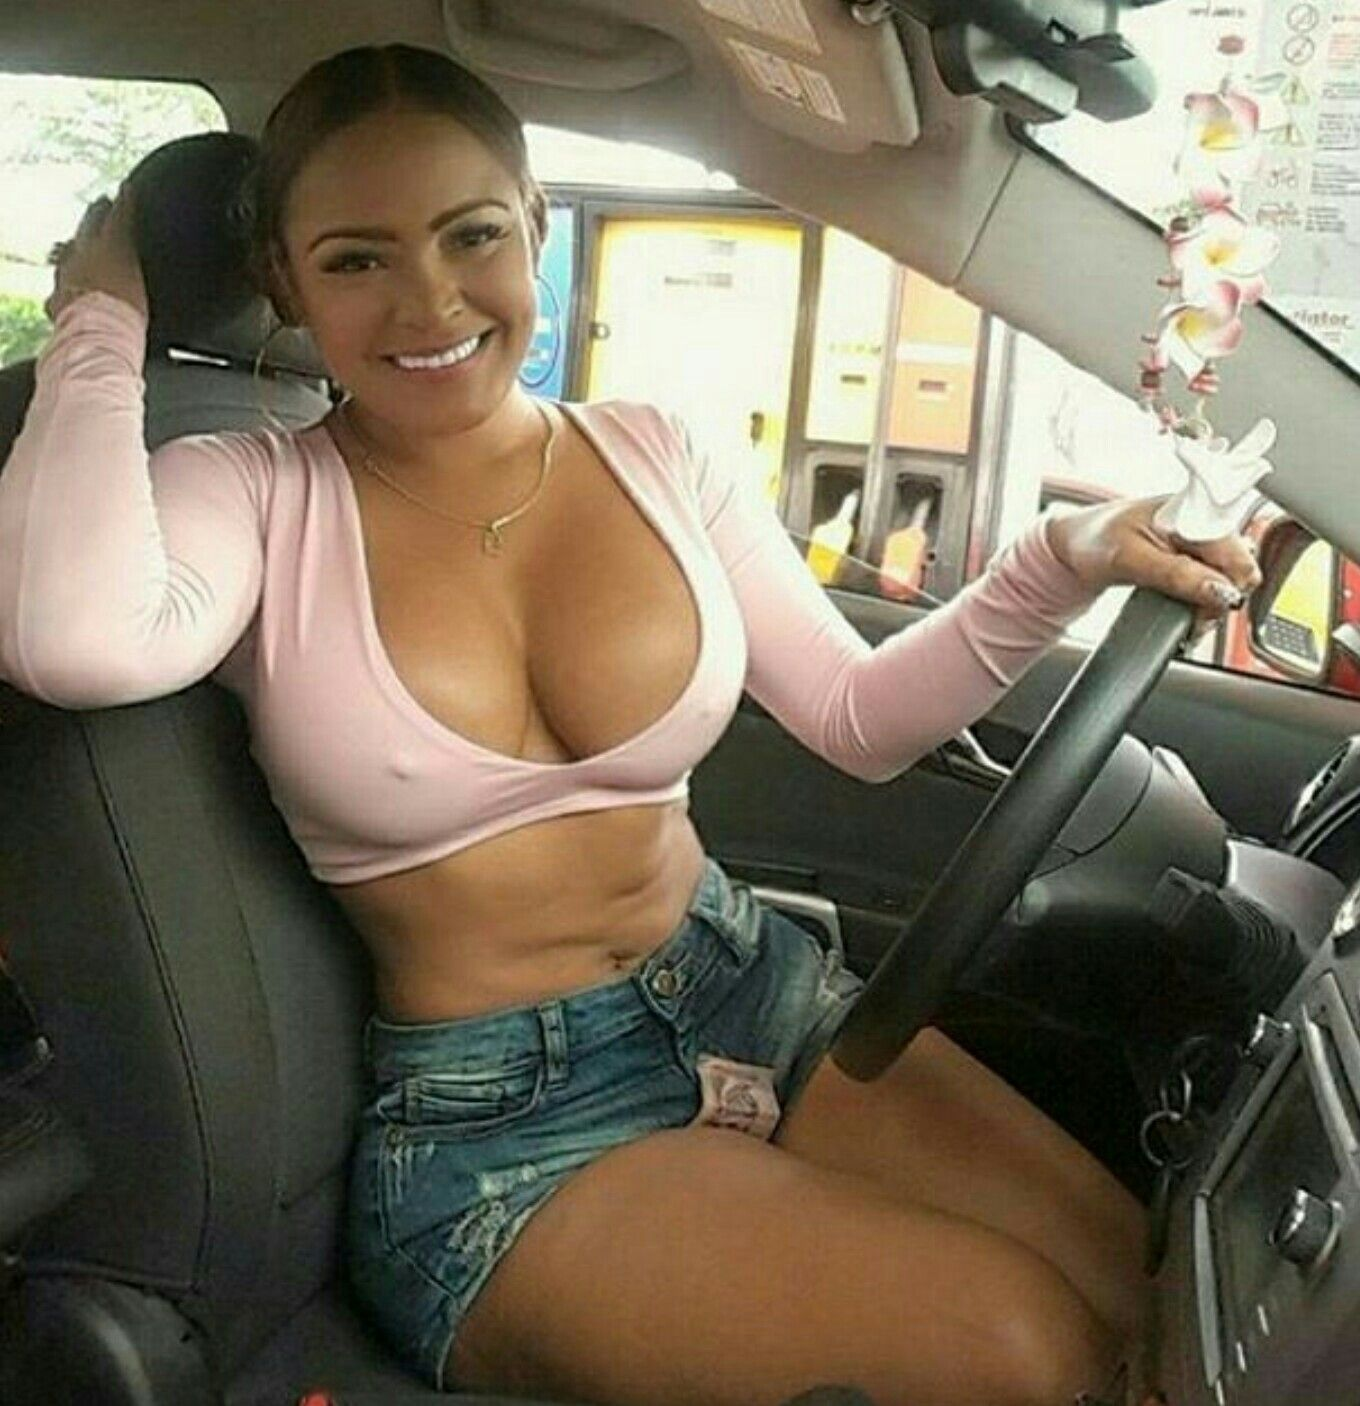 oooo can i ride? | ebony visions | pinterest | curves, curvy and boobs